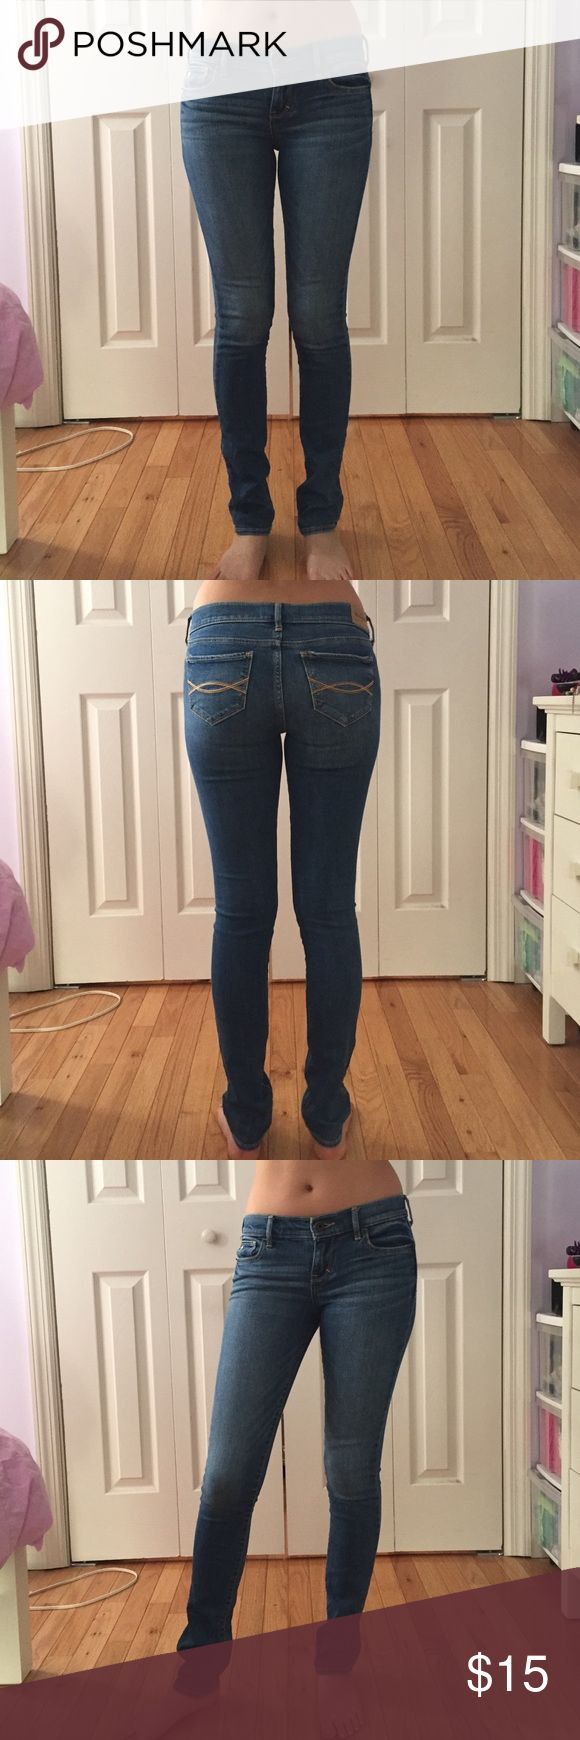 Abercrombie kids 16 slim skinny jeans Abercrombie kids medium wash skinny jeans. Size 16 slim fits like a 0 from hollister or abercrombie&fitch because this is an older style. Worn only a couple of times. Like new. abercrombie kids Jeans Skinny